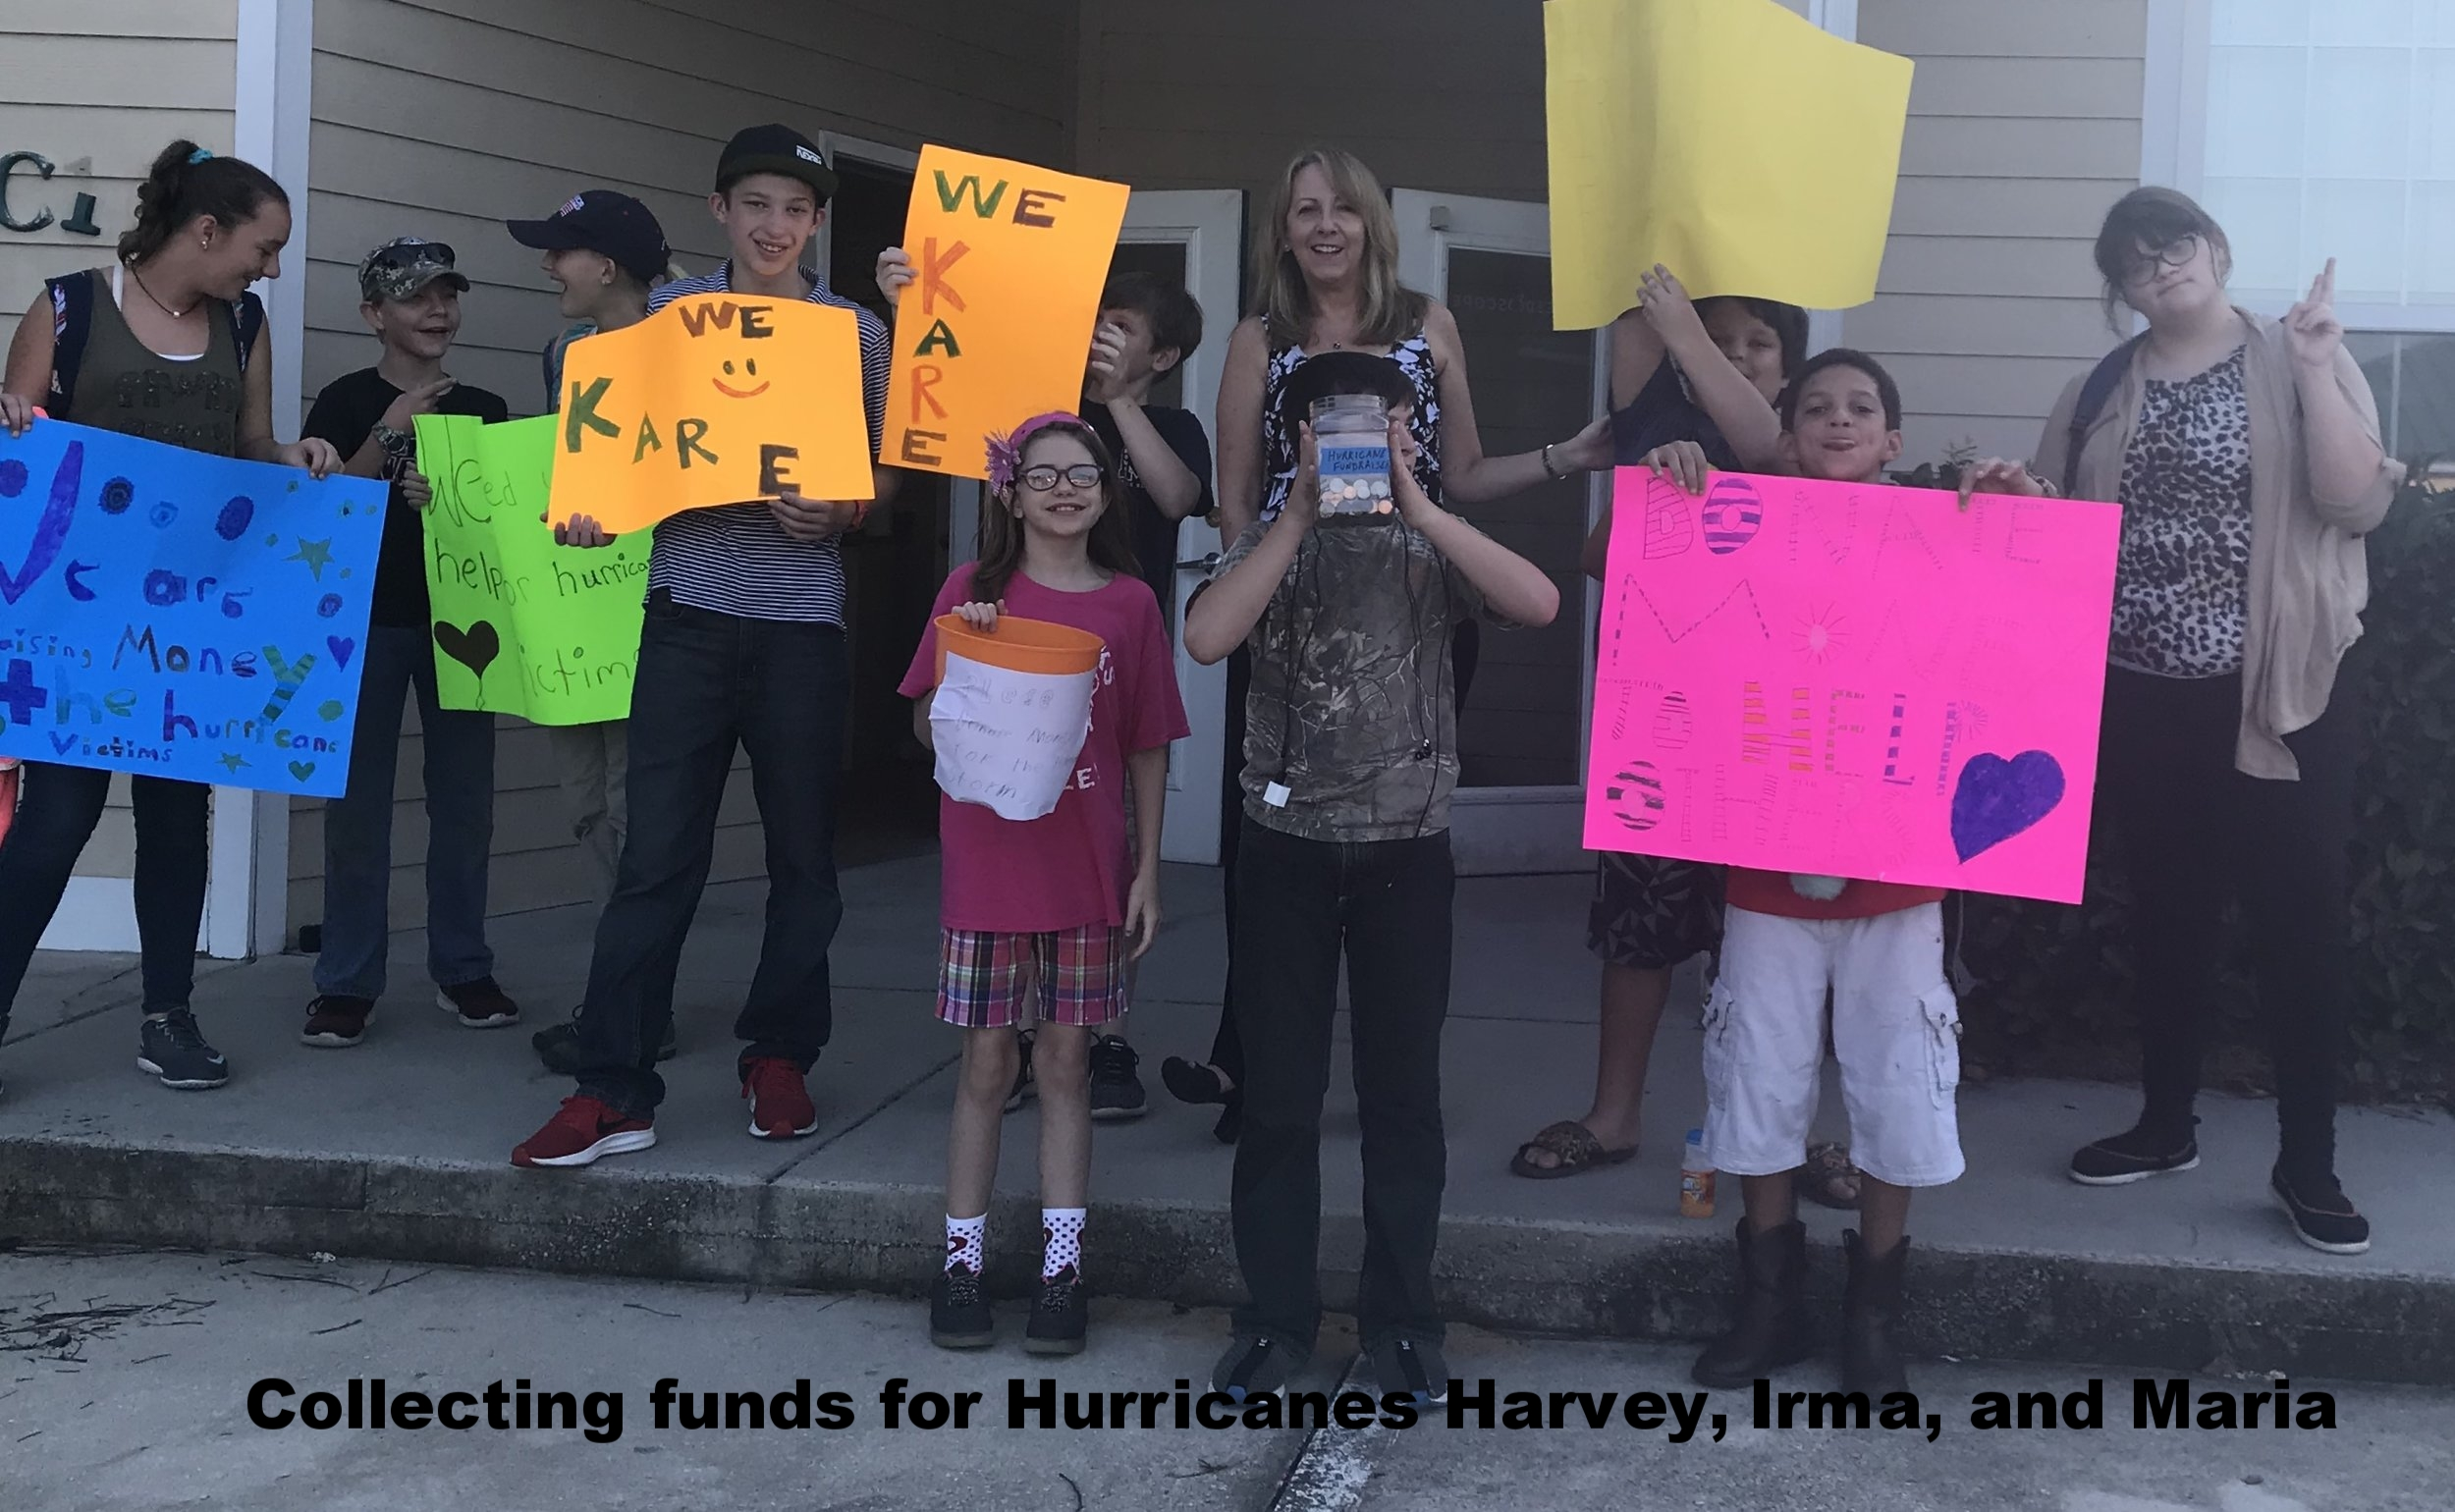 Collecting funds for those affected by Hurricanes Harvey, Irma, and Maria